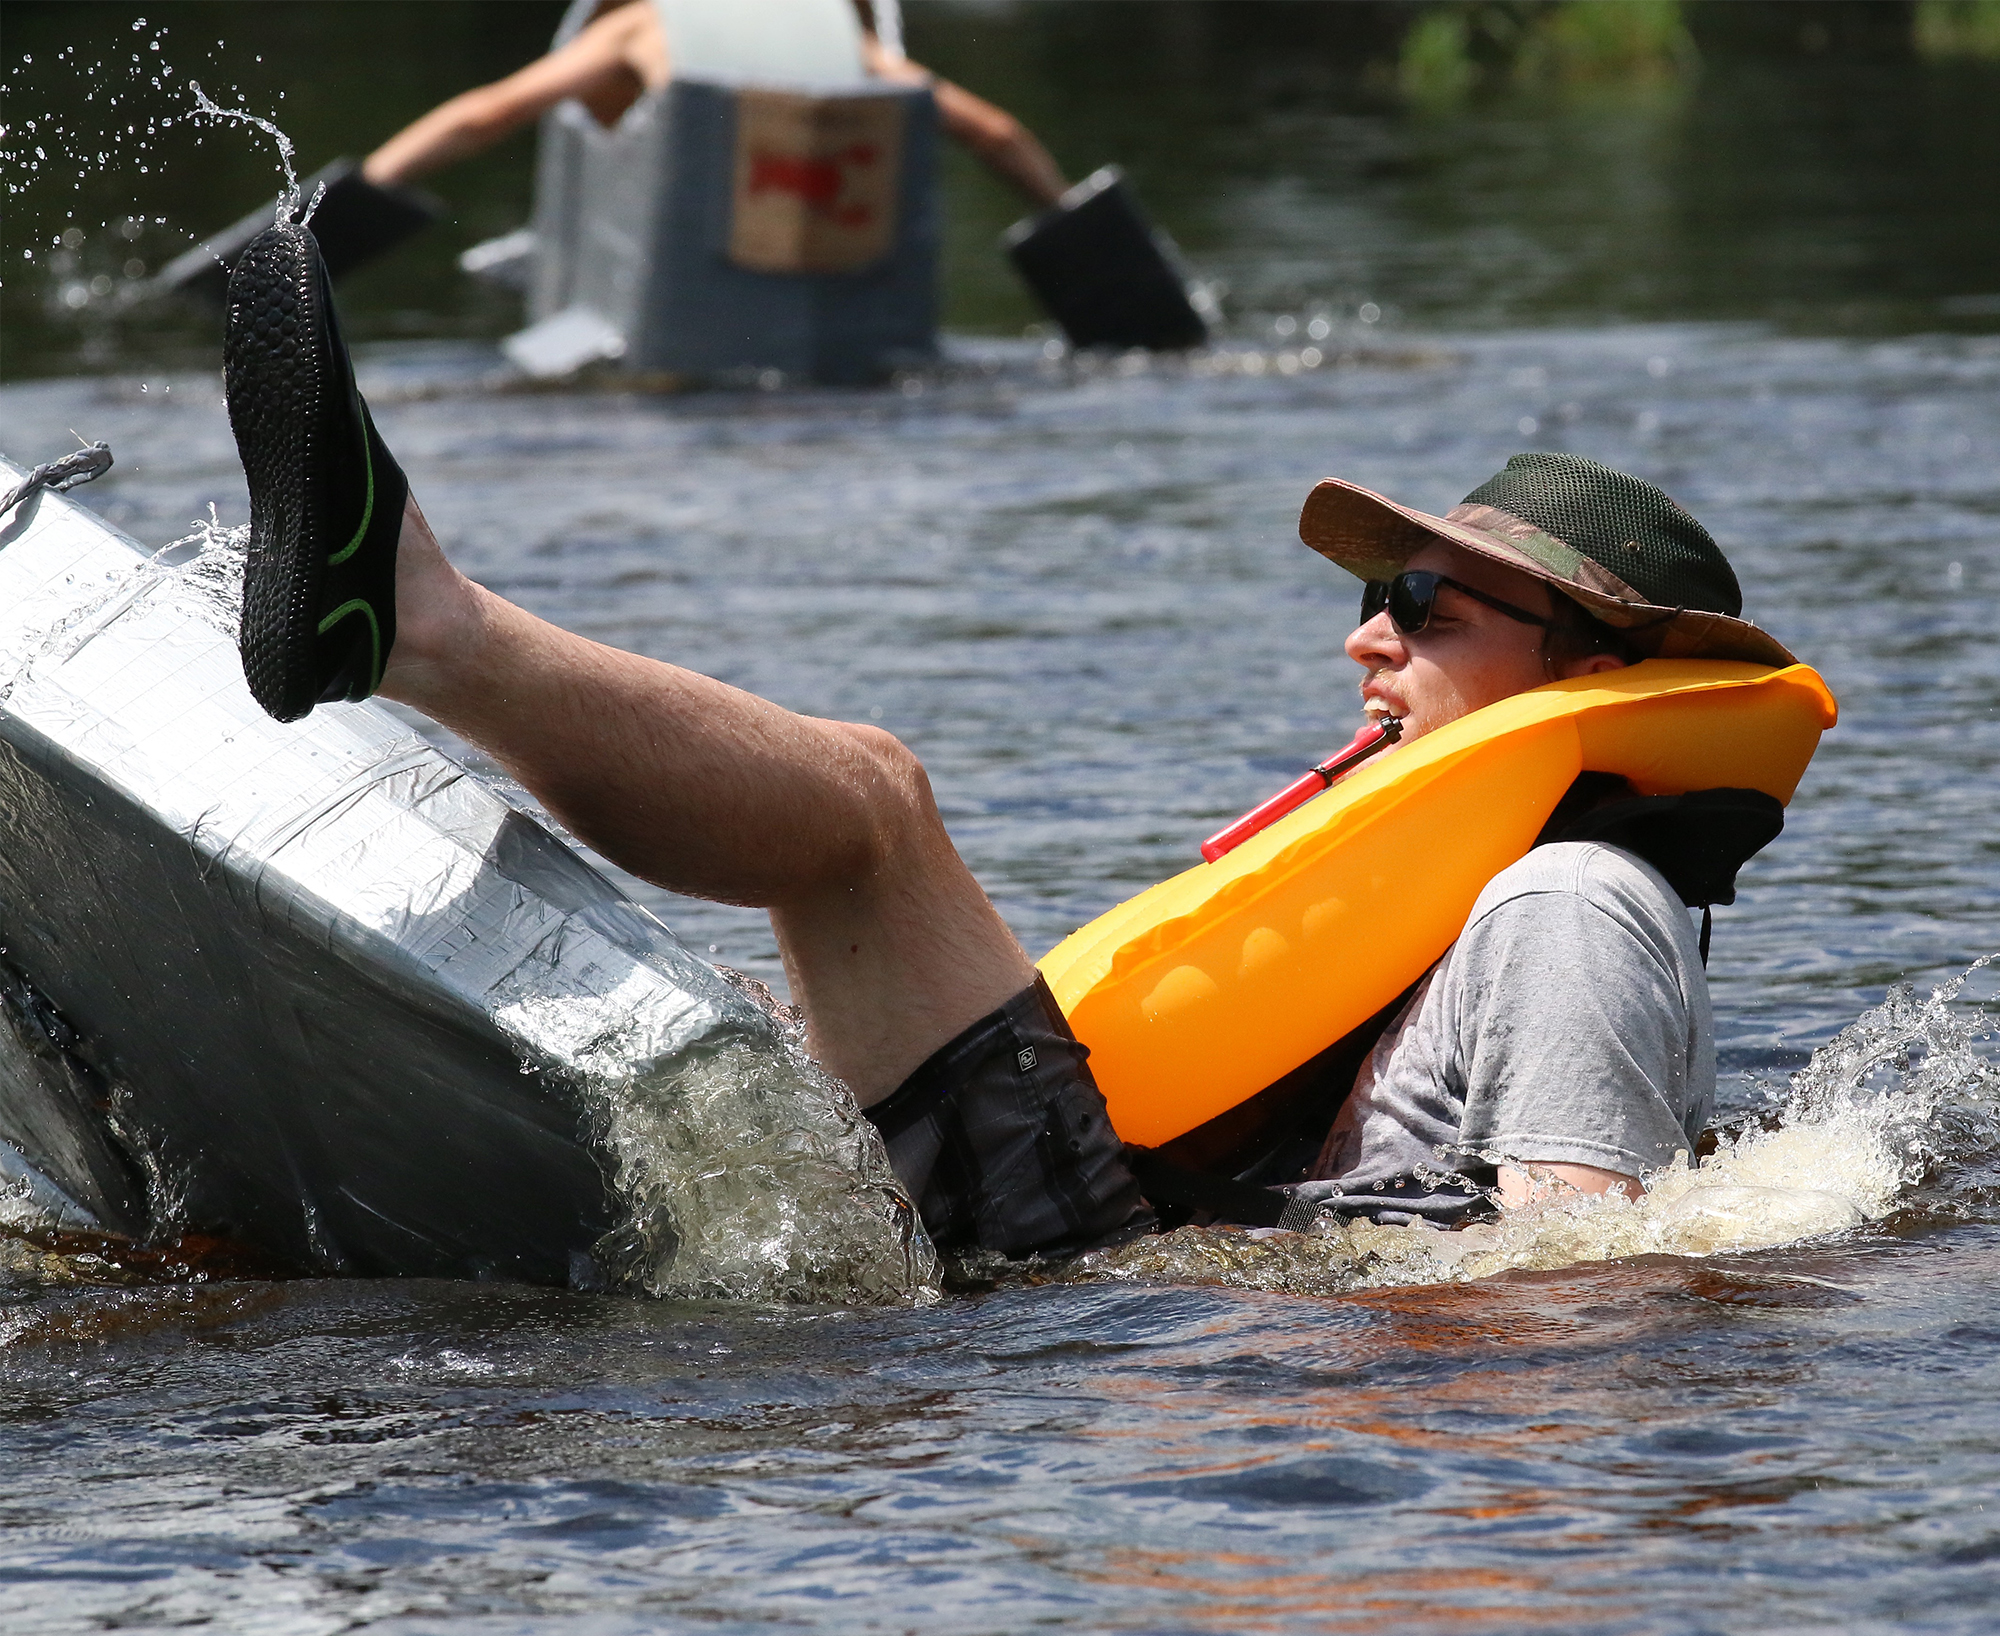 Jason Dietrich, West Bend, had a few stability problems with his cardboard and duct tape raft at the annual Cardboard Boat Regatta at the Tilleda Falls Campground on Saturday. The event requires sailors to create a craft entirely out of cardboard, with waterproofing and structure provided by rolls of duct tape.<br />Carol Ryczek | NEW Media